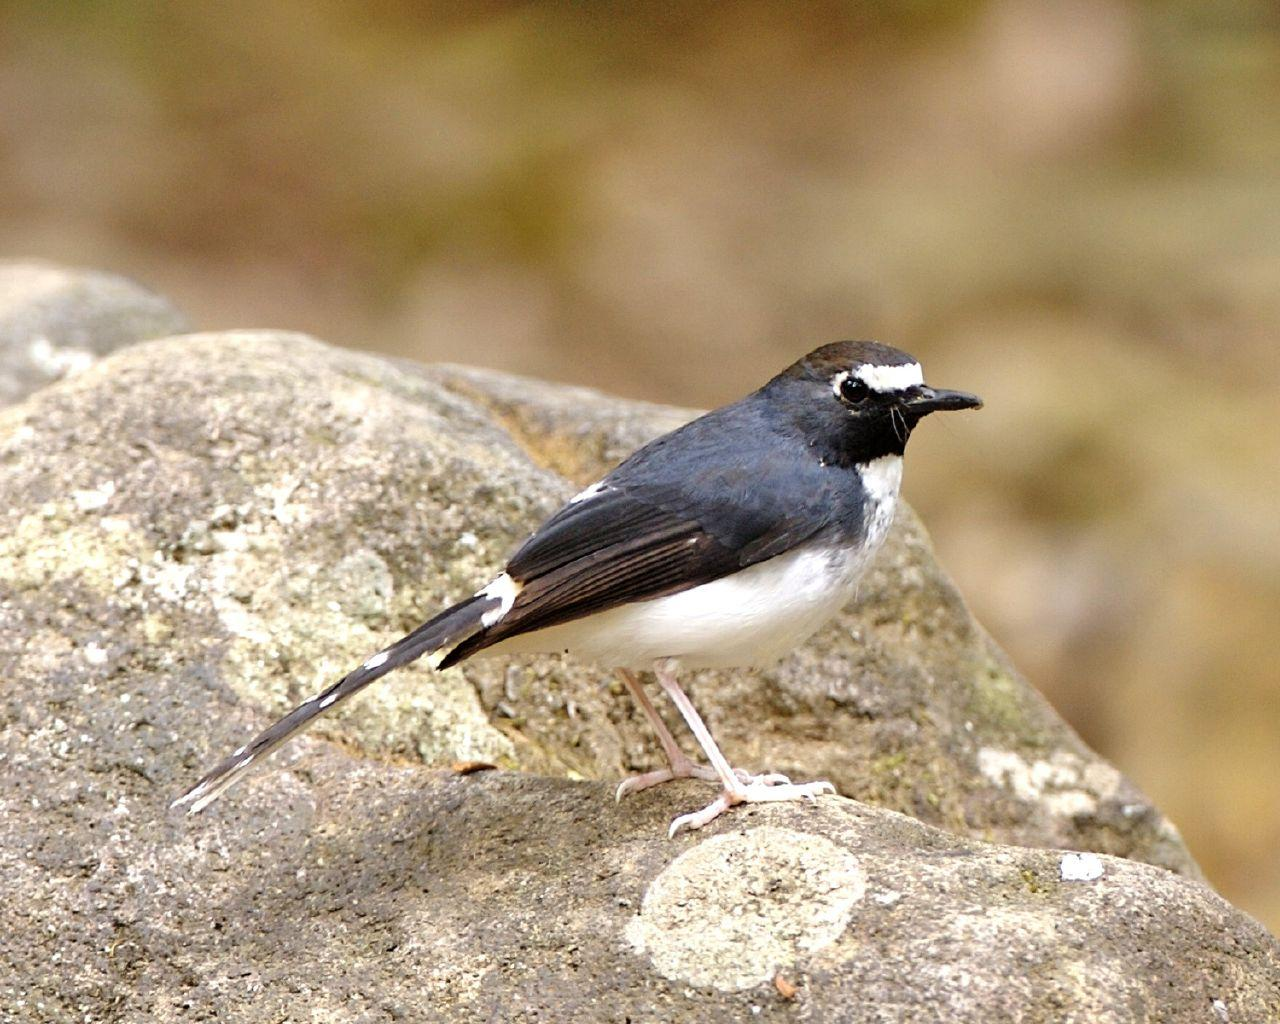 https://upload.wikimedia.org/wikipedia/commons/d/d0/Sunda_forktail.jpg